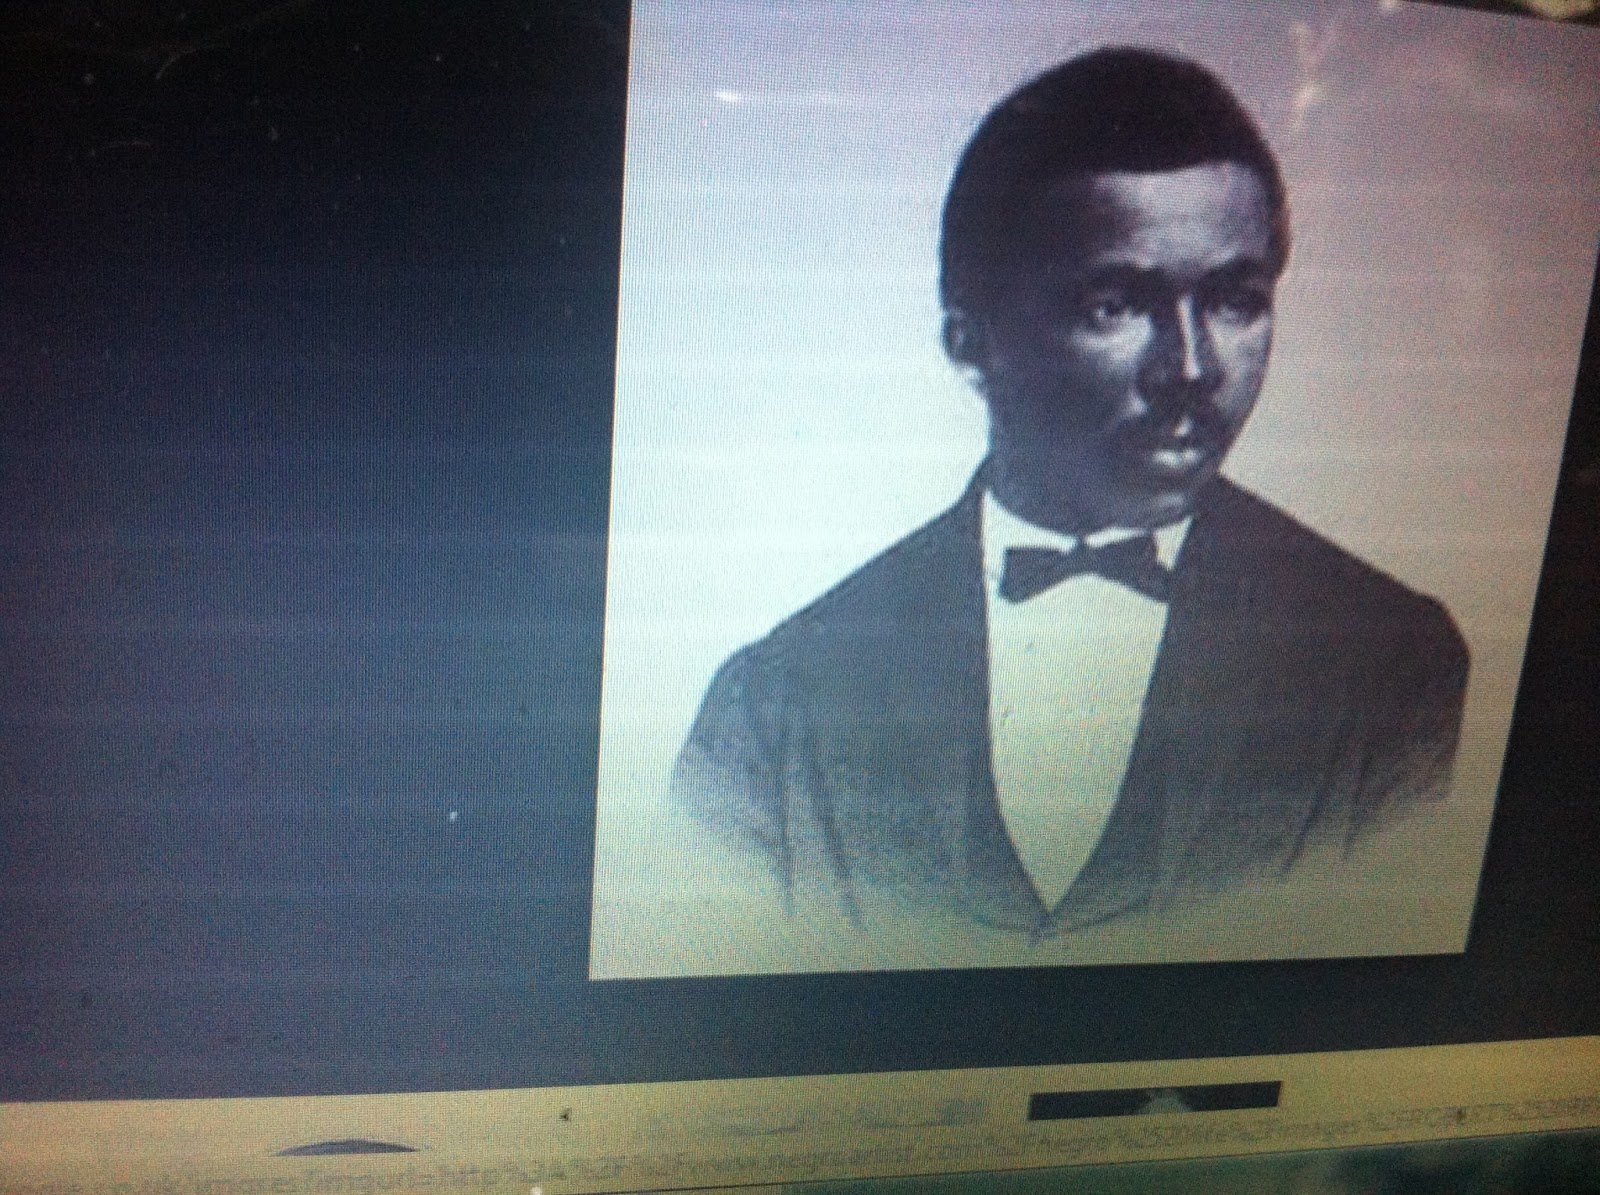 black single men in wade hampton county I am reading about wade hampton's life when southern white men finally surrendered it and i challenge her most bitter enemy to adduce one single.